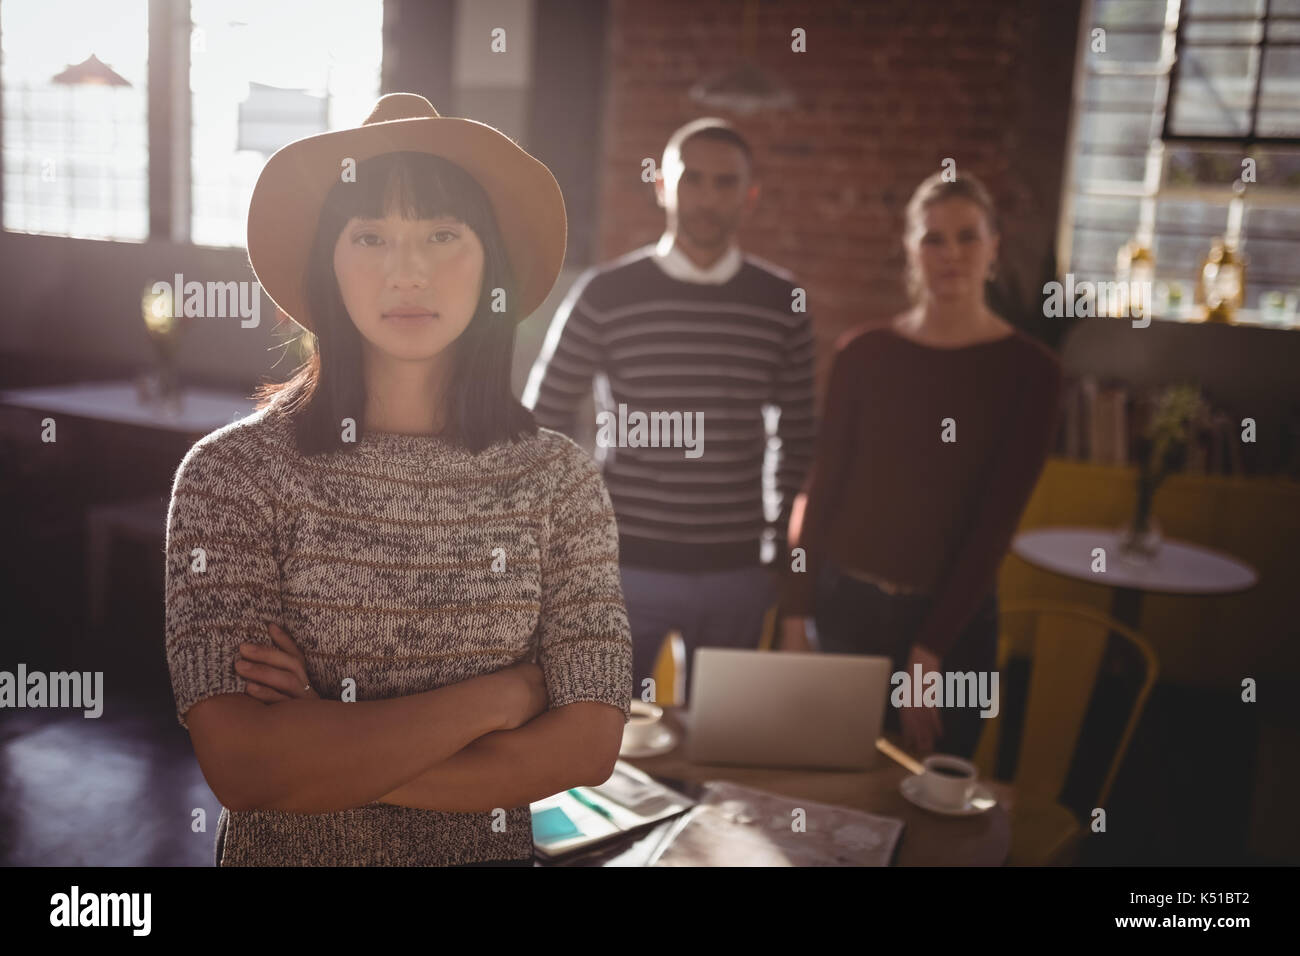 Portrait of woman wearing hat standing with arms crossed against colleagues at coffee shop - Stock Image